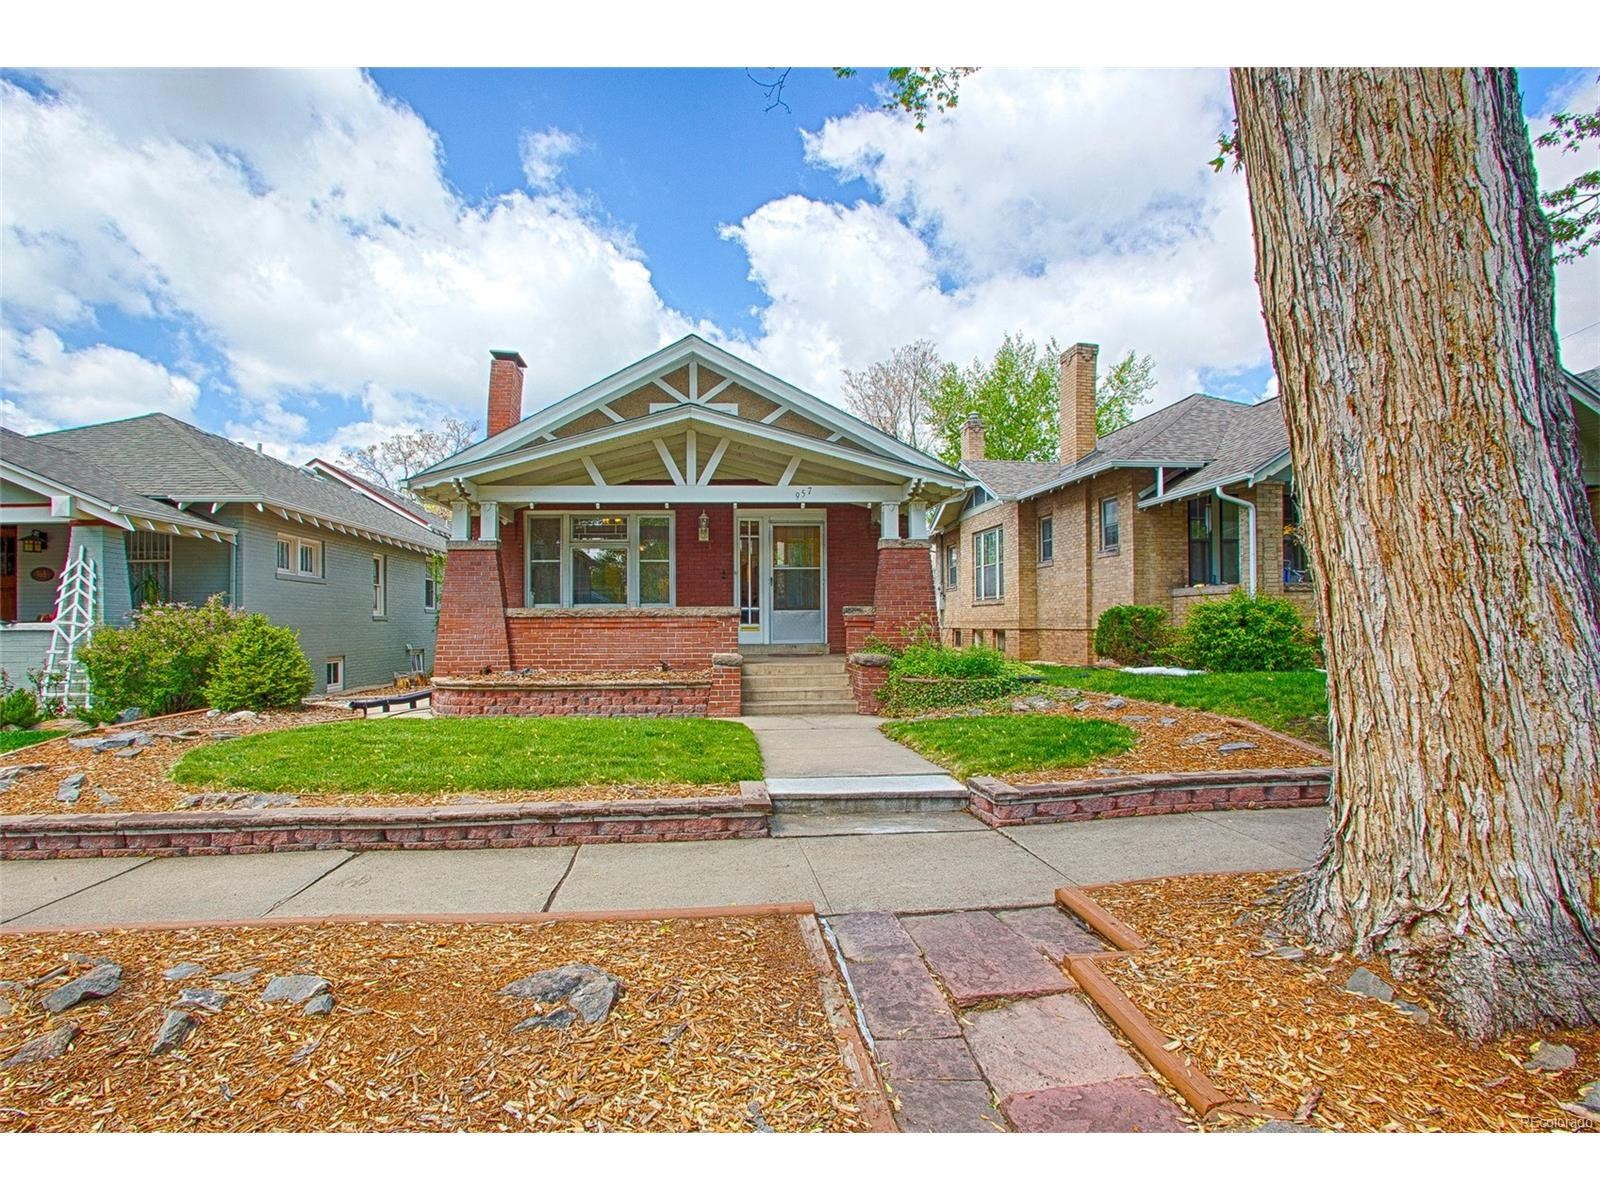 Sold! Beautiful Craftsman Style Bungalow in East Wash Park